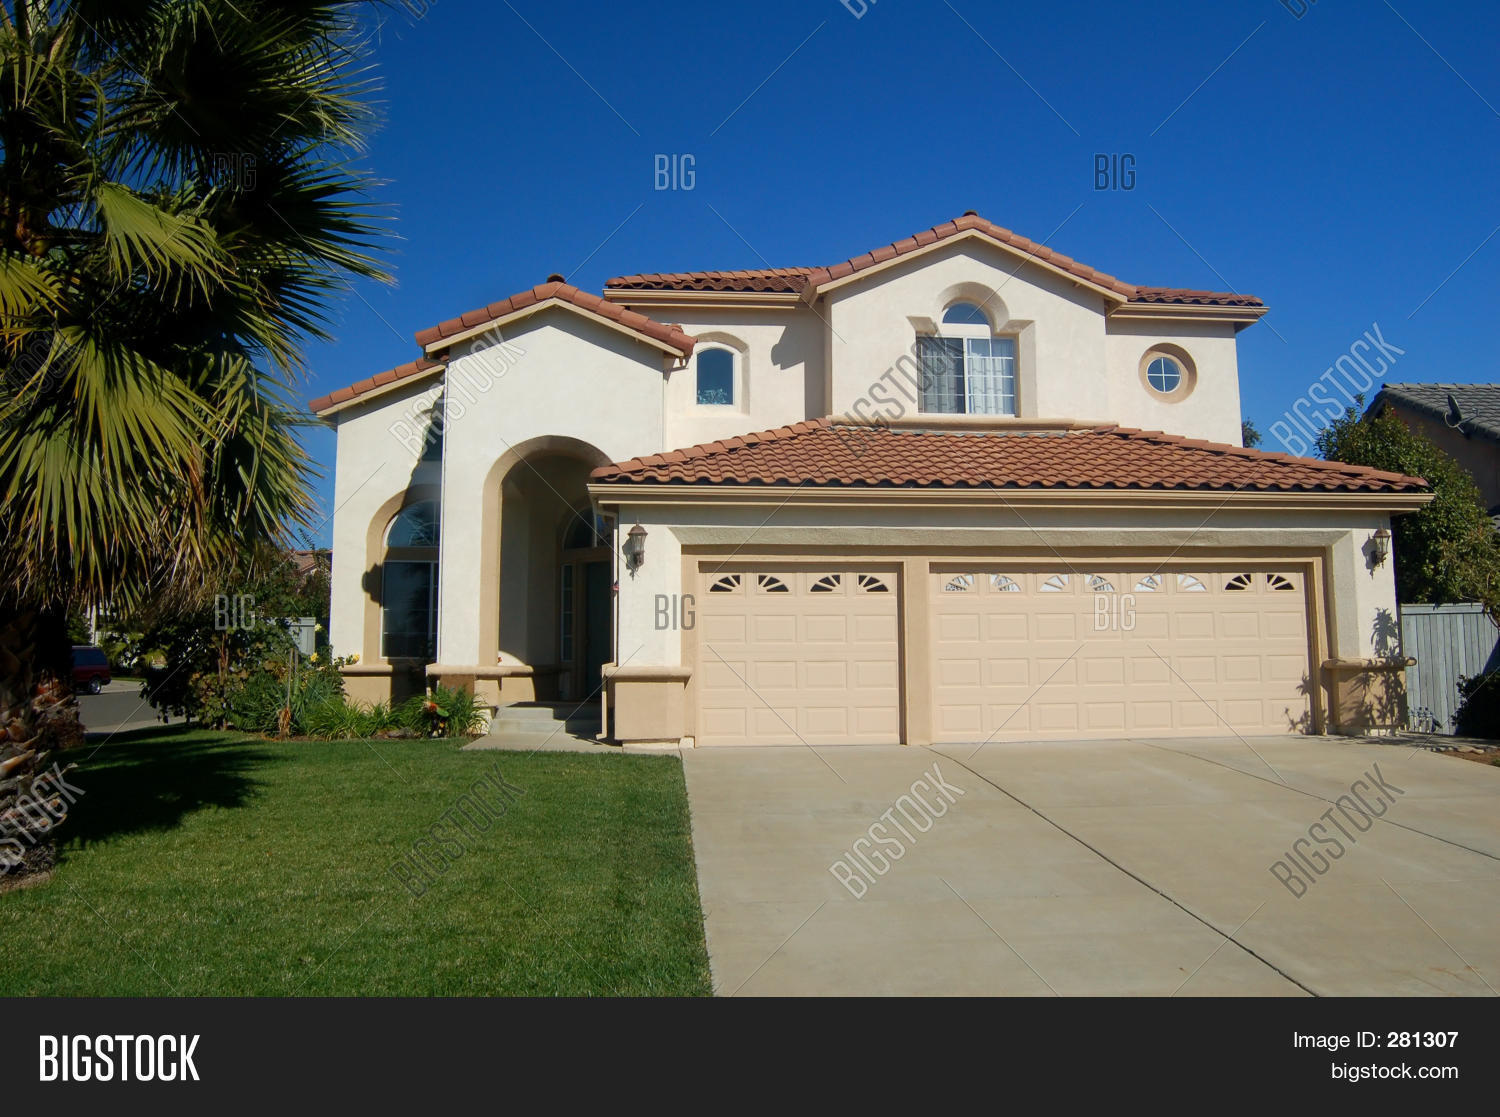 Nice house california image photo bigstock for Nice house picture